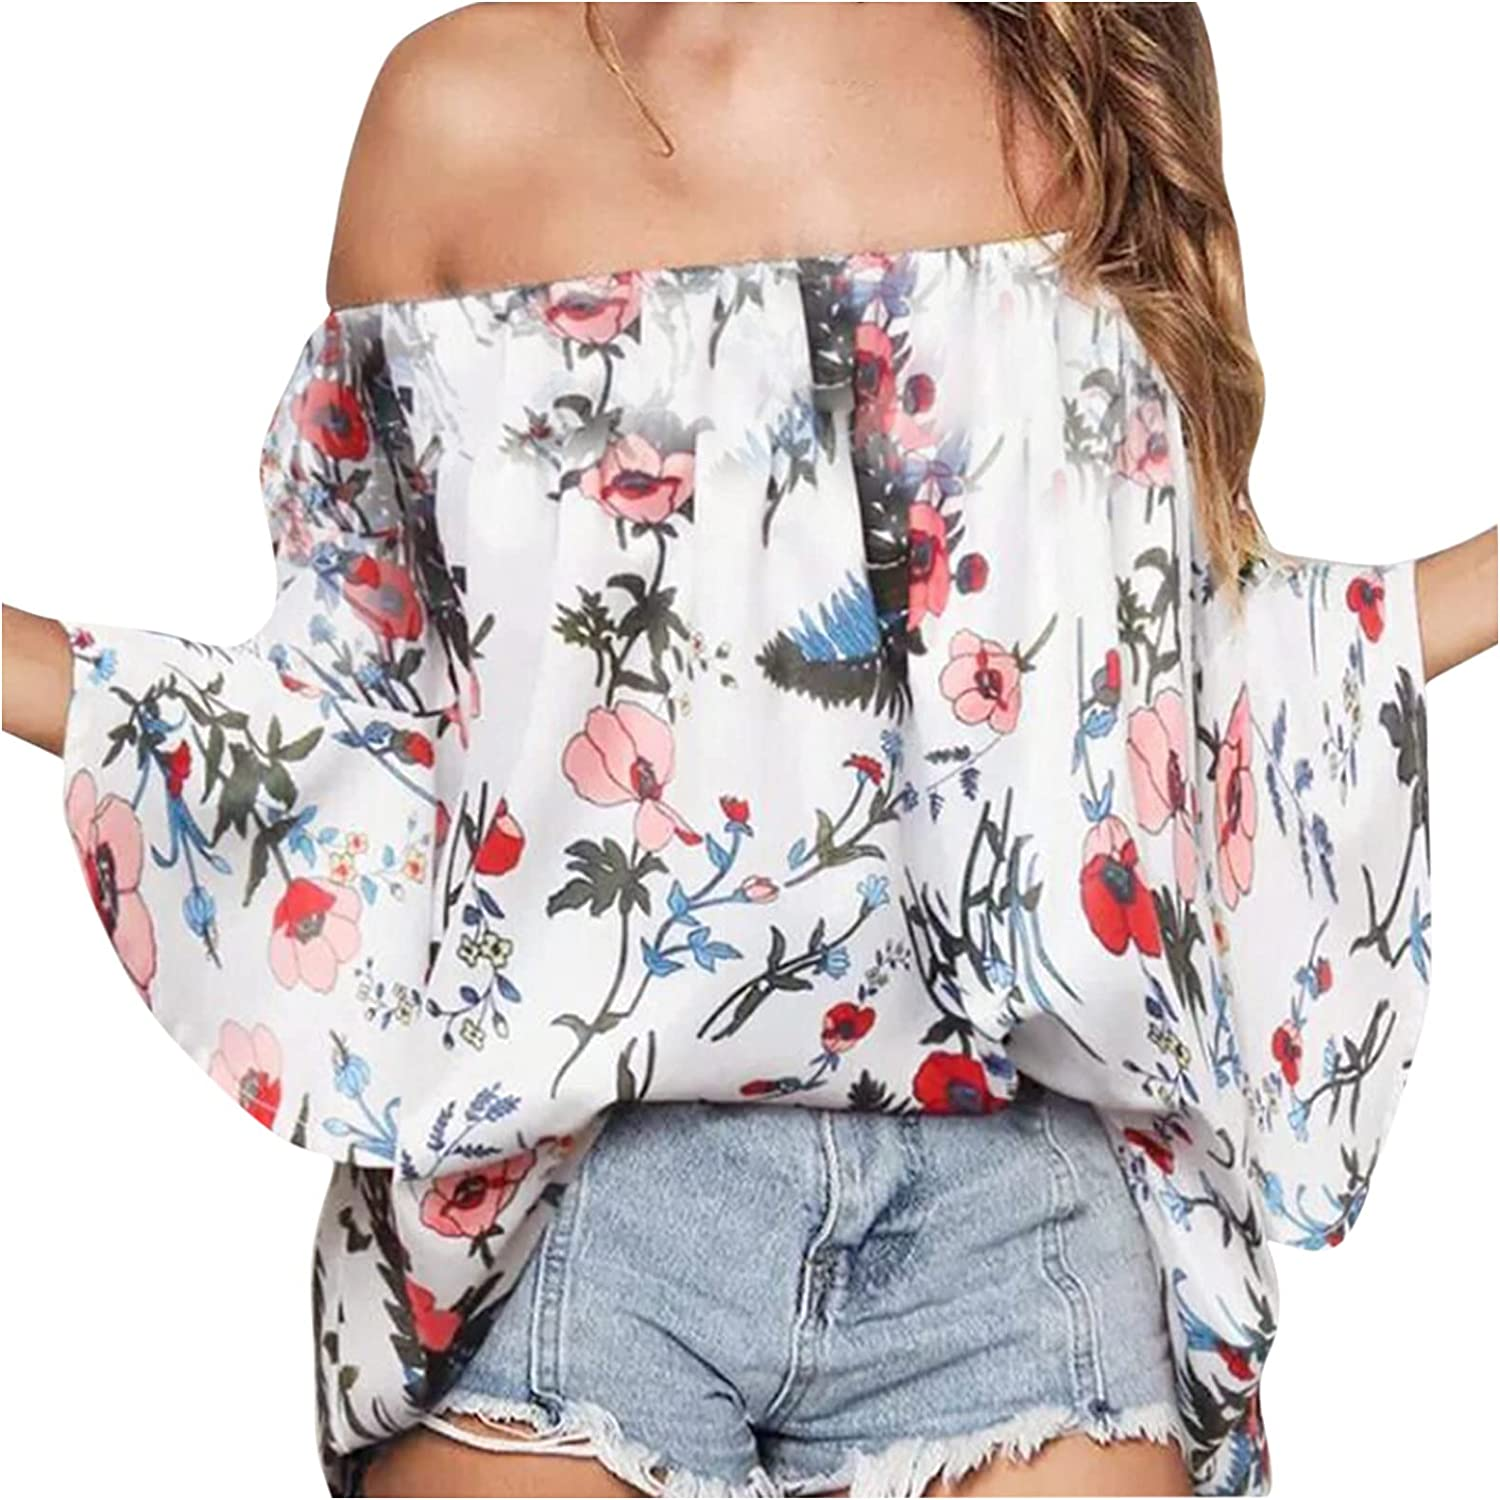 Women's Blouses and Tops Three-quarter Sleeves Loose Age-reducing Temperament Printed T-Shirt Top Blouse